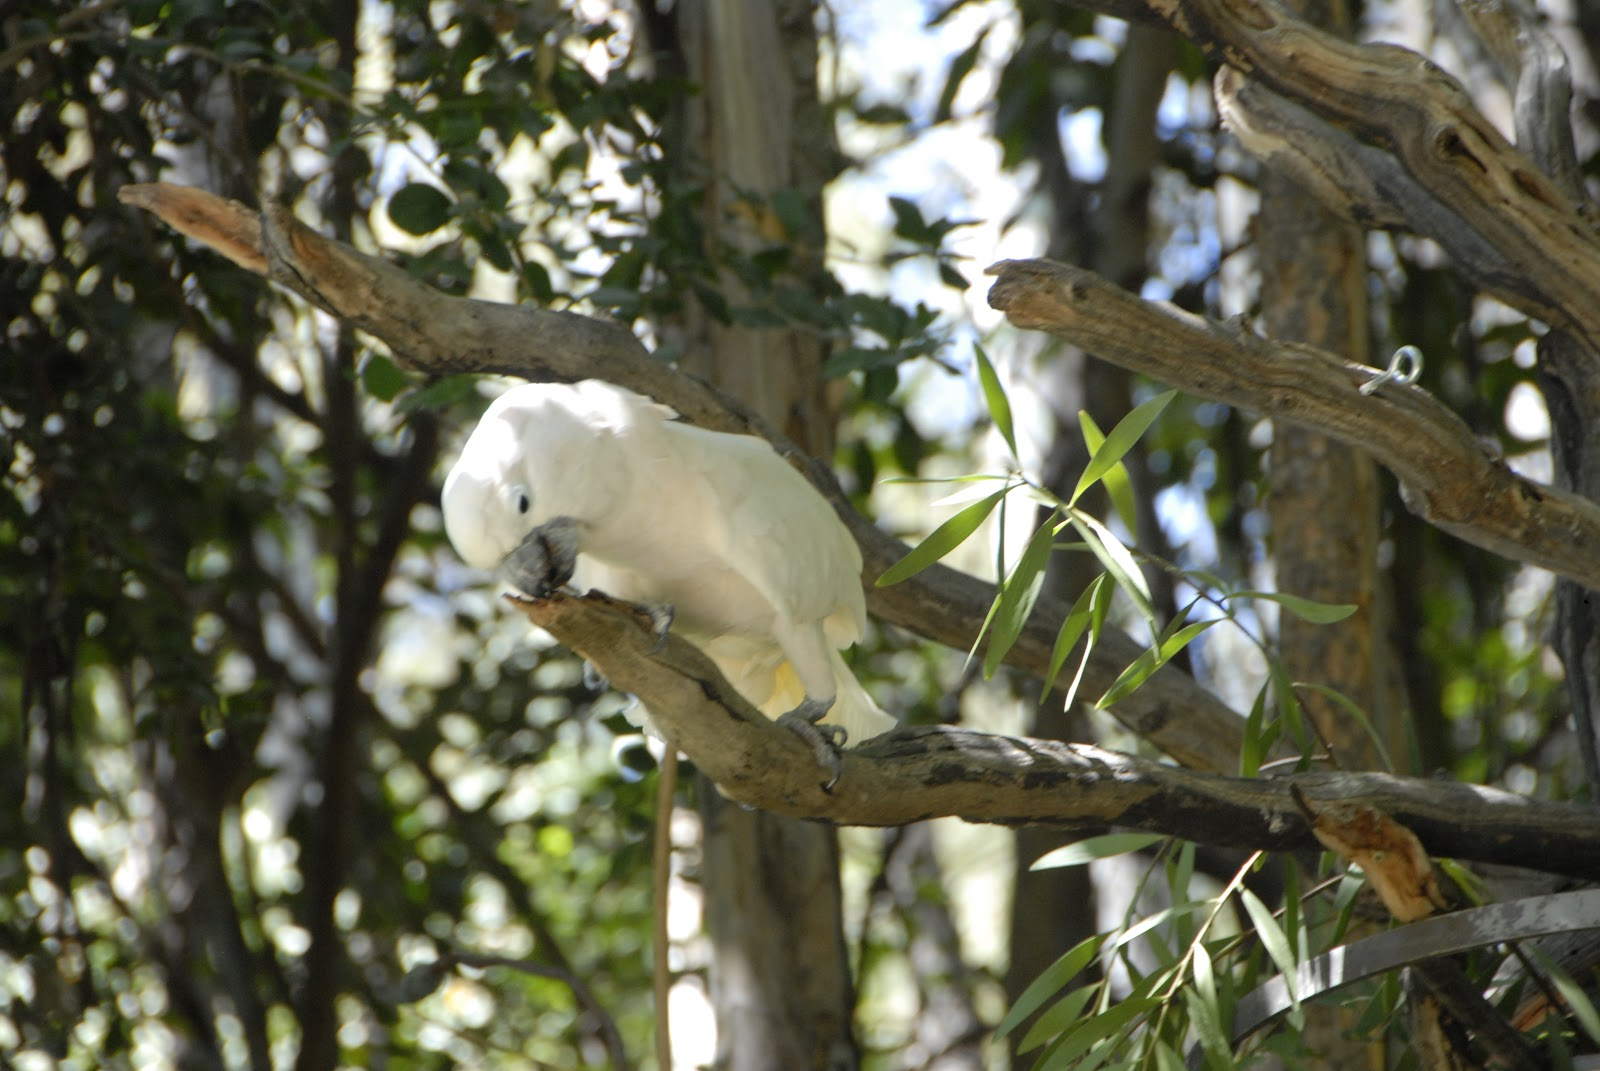 White Parrot at the San Diego Safari Park: LadyD Books